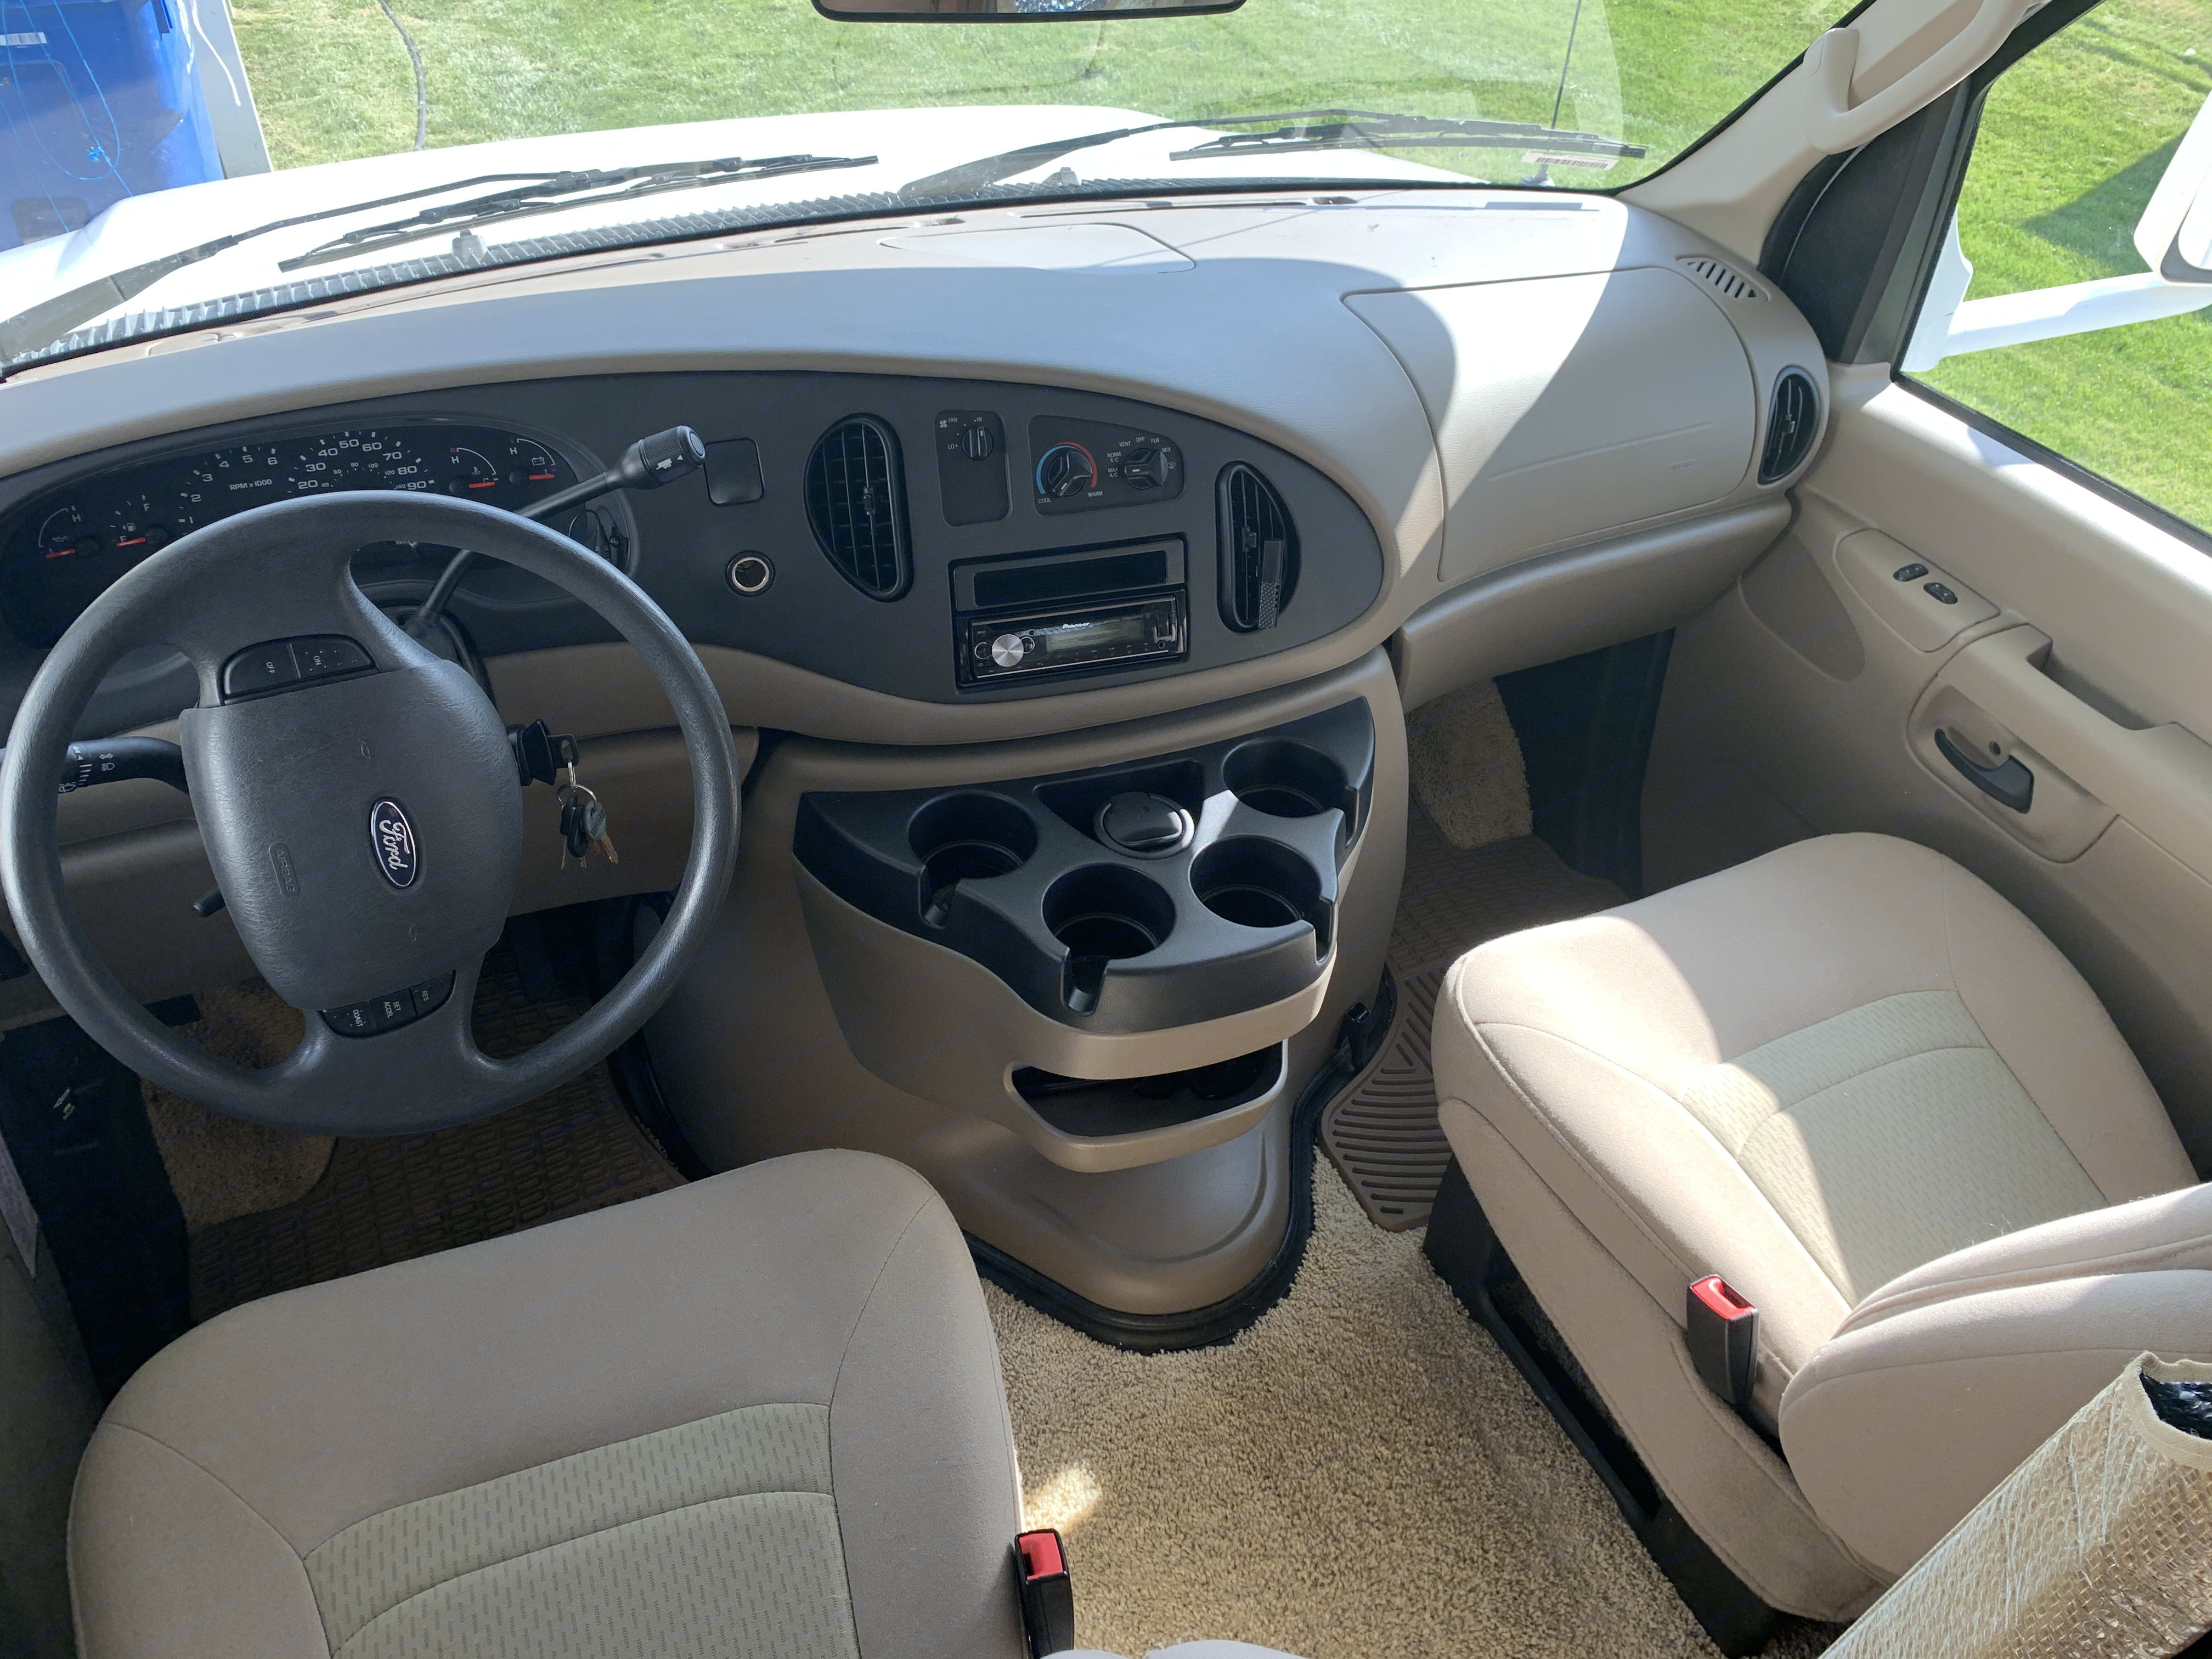 Spacious cab with fully reclining passenger seat and Bluetooth connected stereo. Winnebago Access 2008